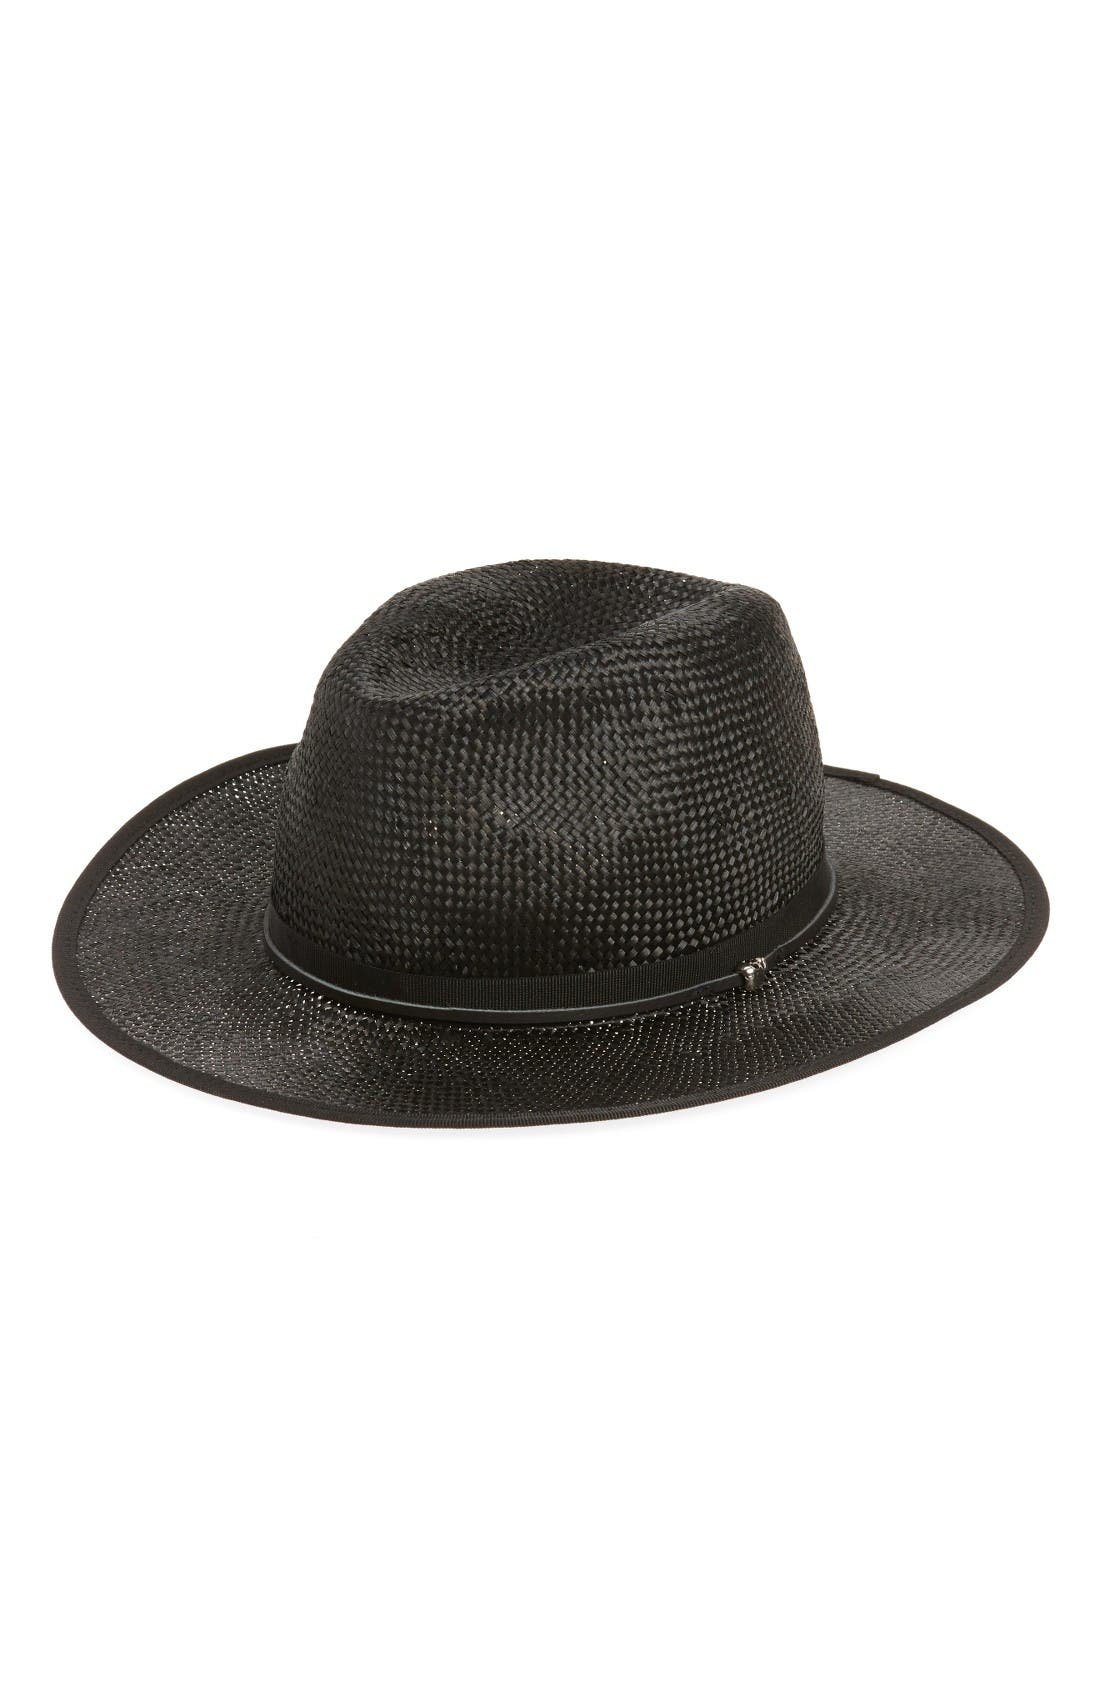 Main Image - The Kooples Leather Trim Straw Hat